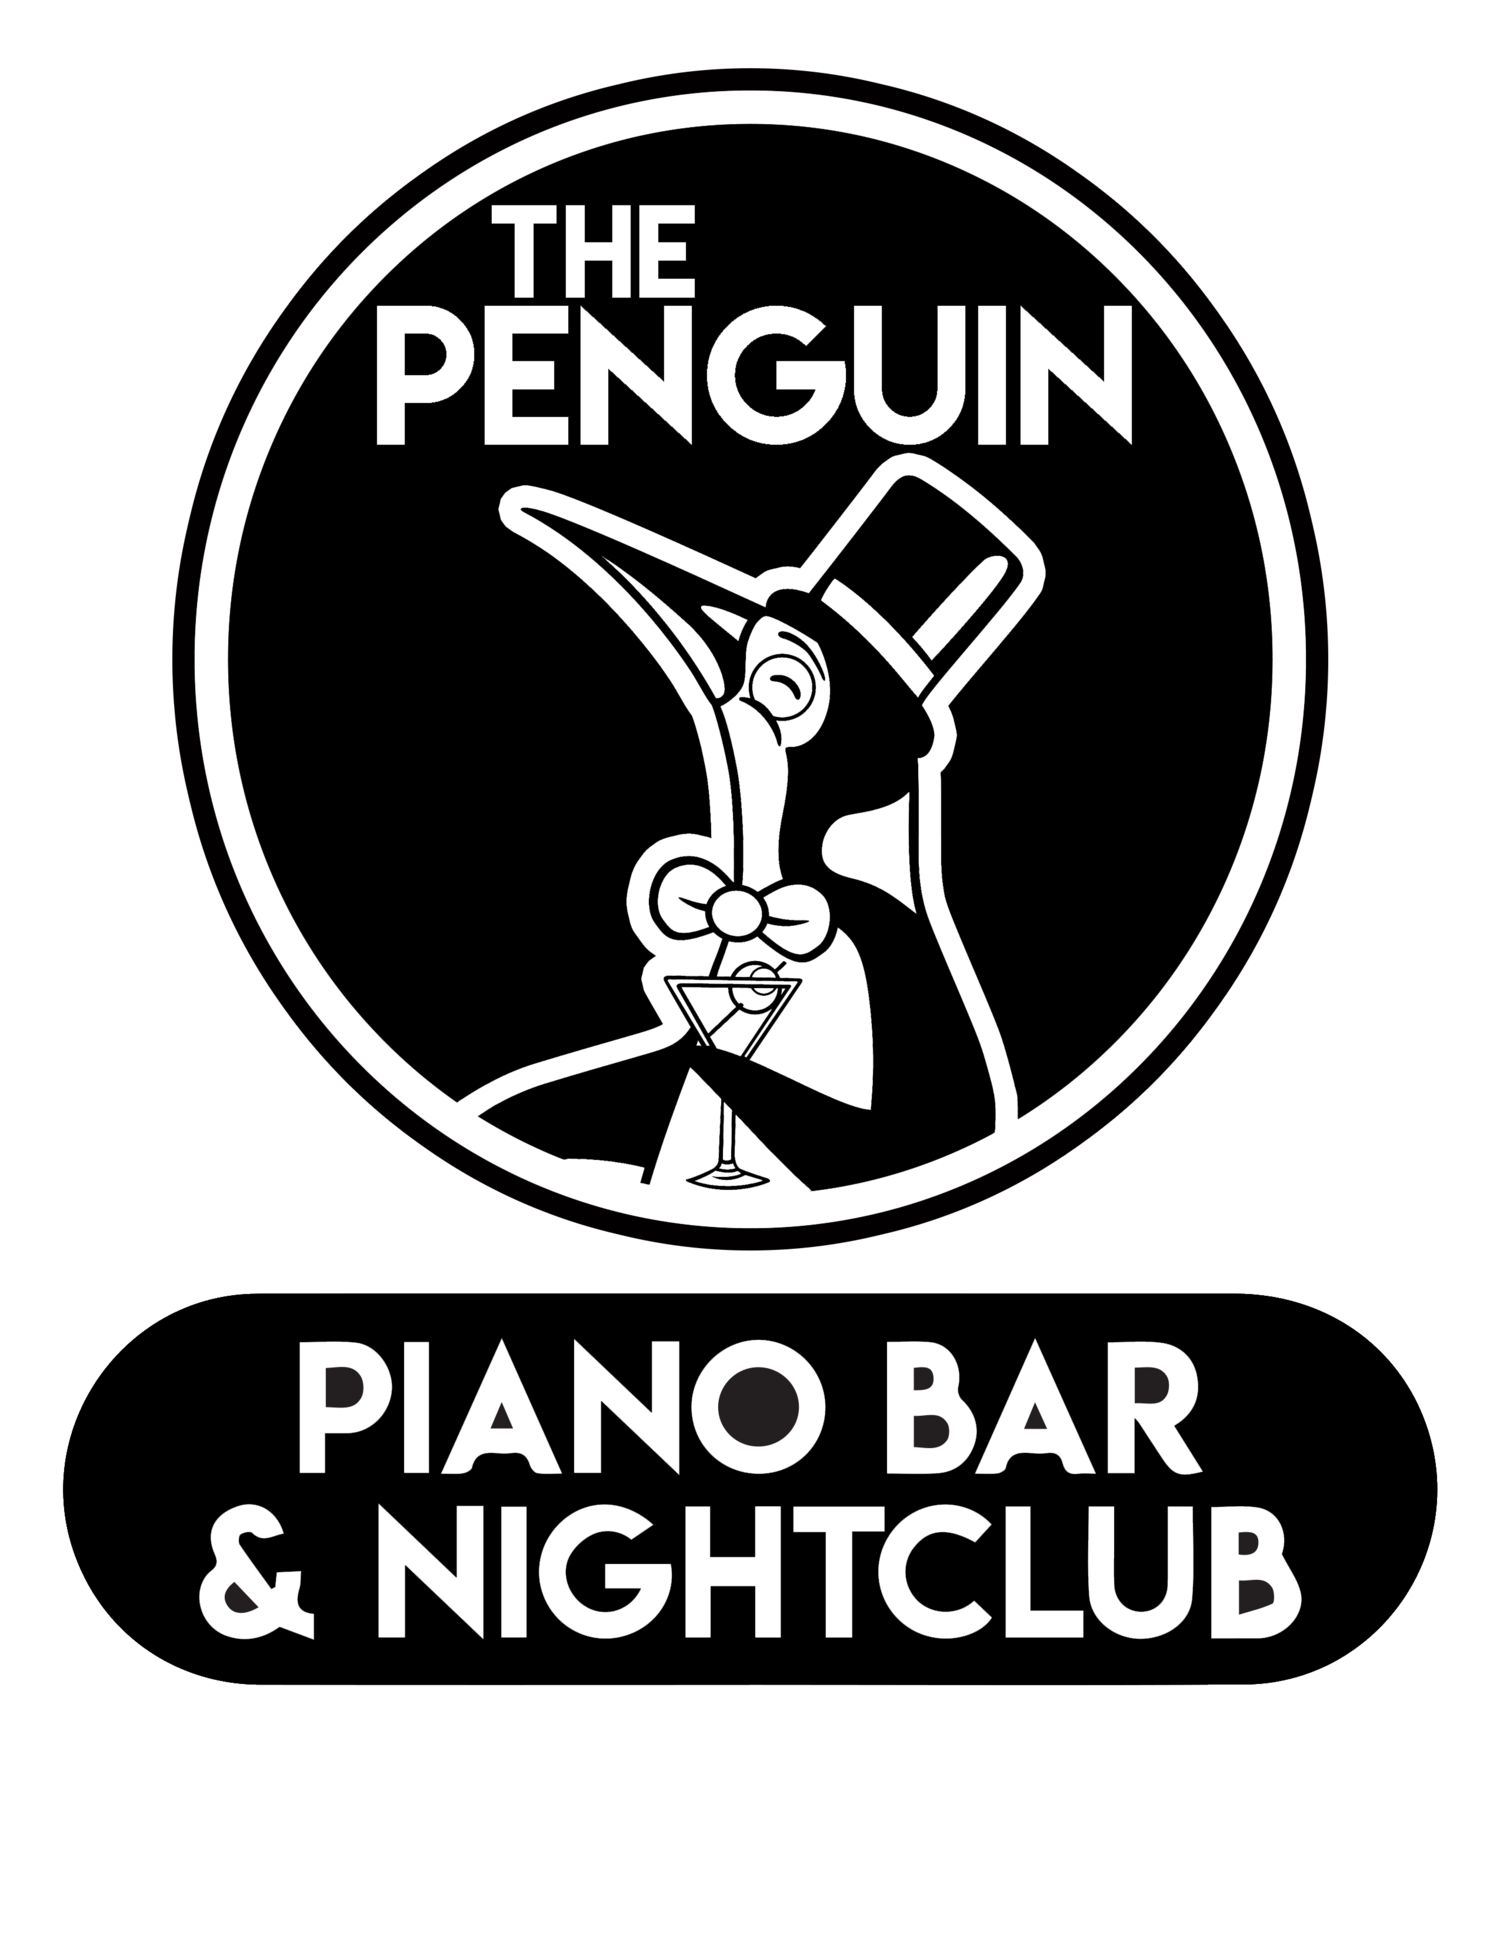 The Penguin Piano Bar & Nightclub